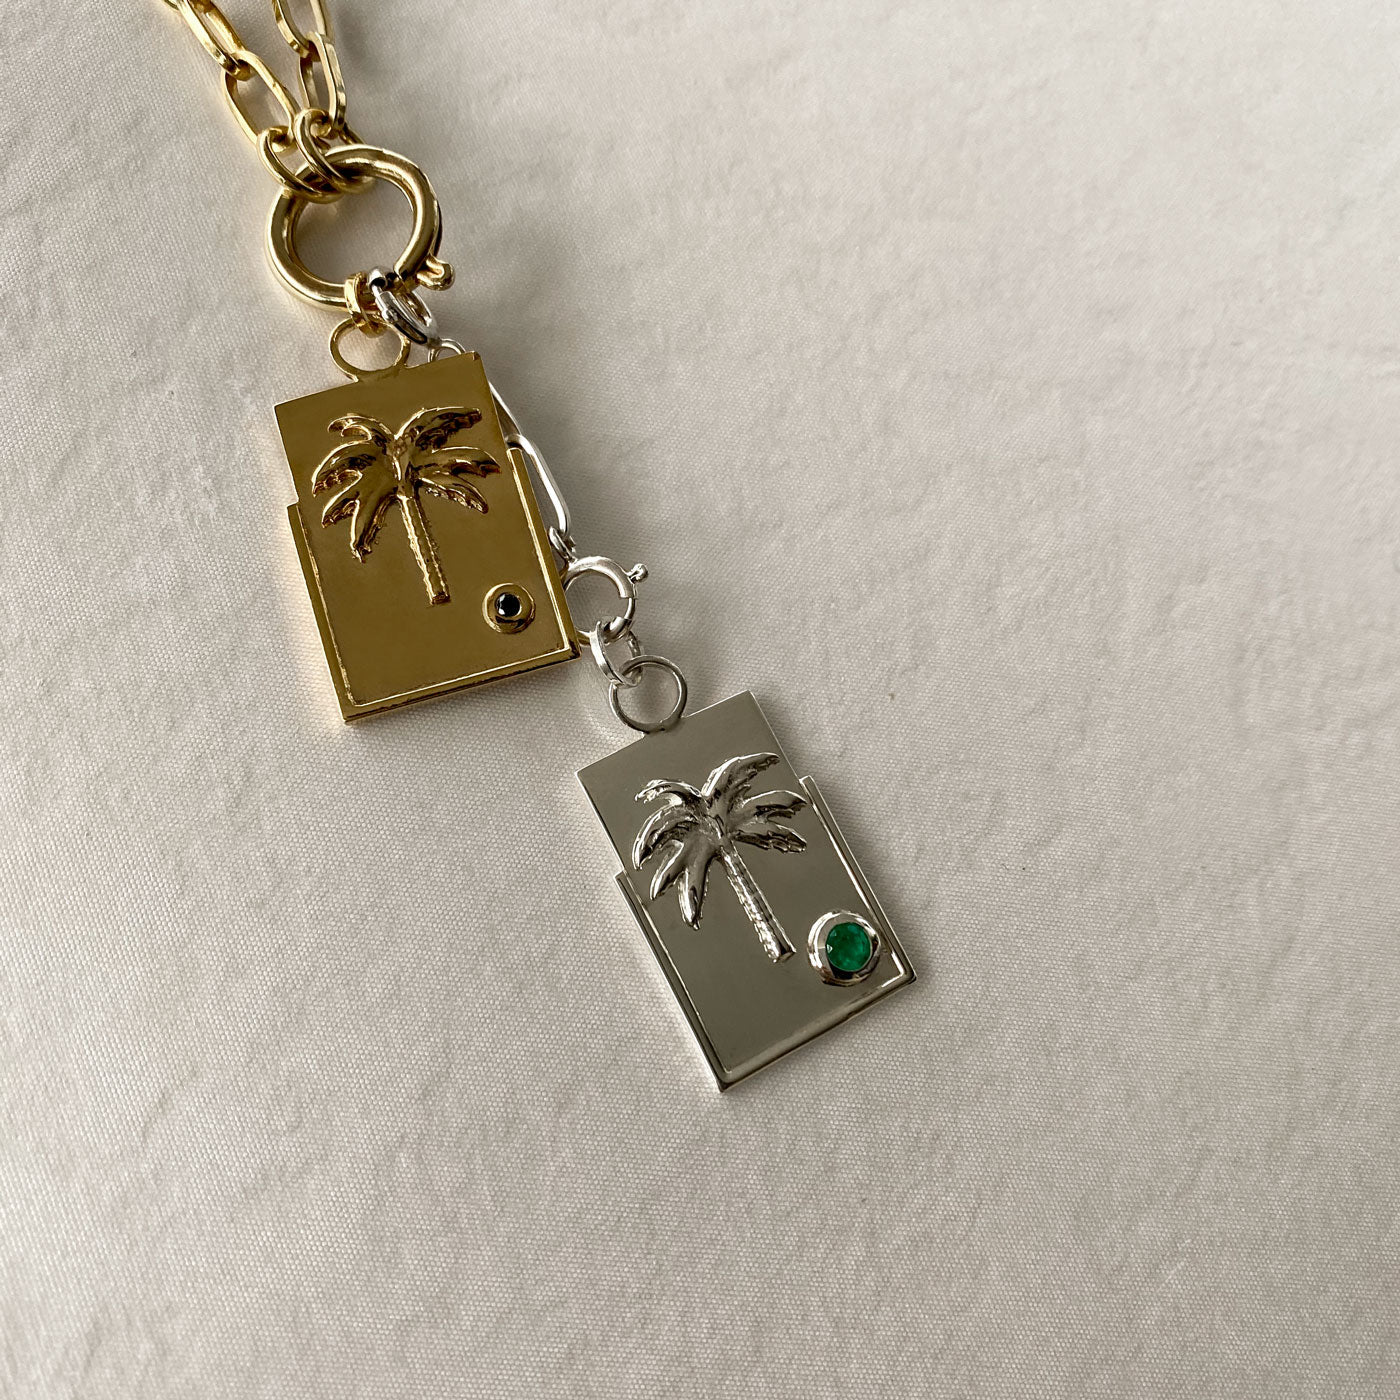 sierra-palm-tree-meallion-charm-silver-emerald-good-energy-colombian-jewelry-designers